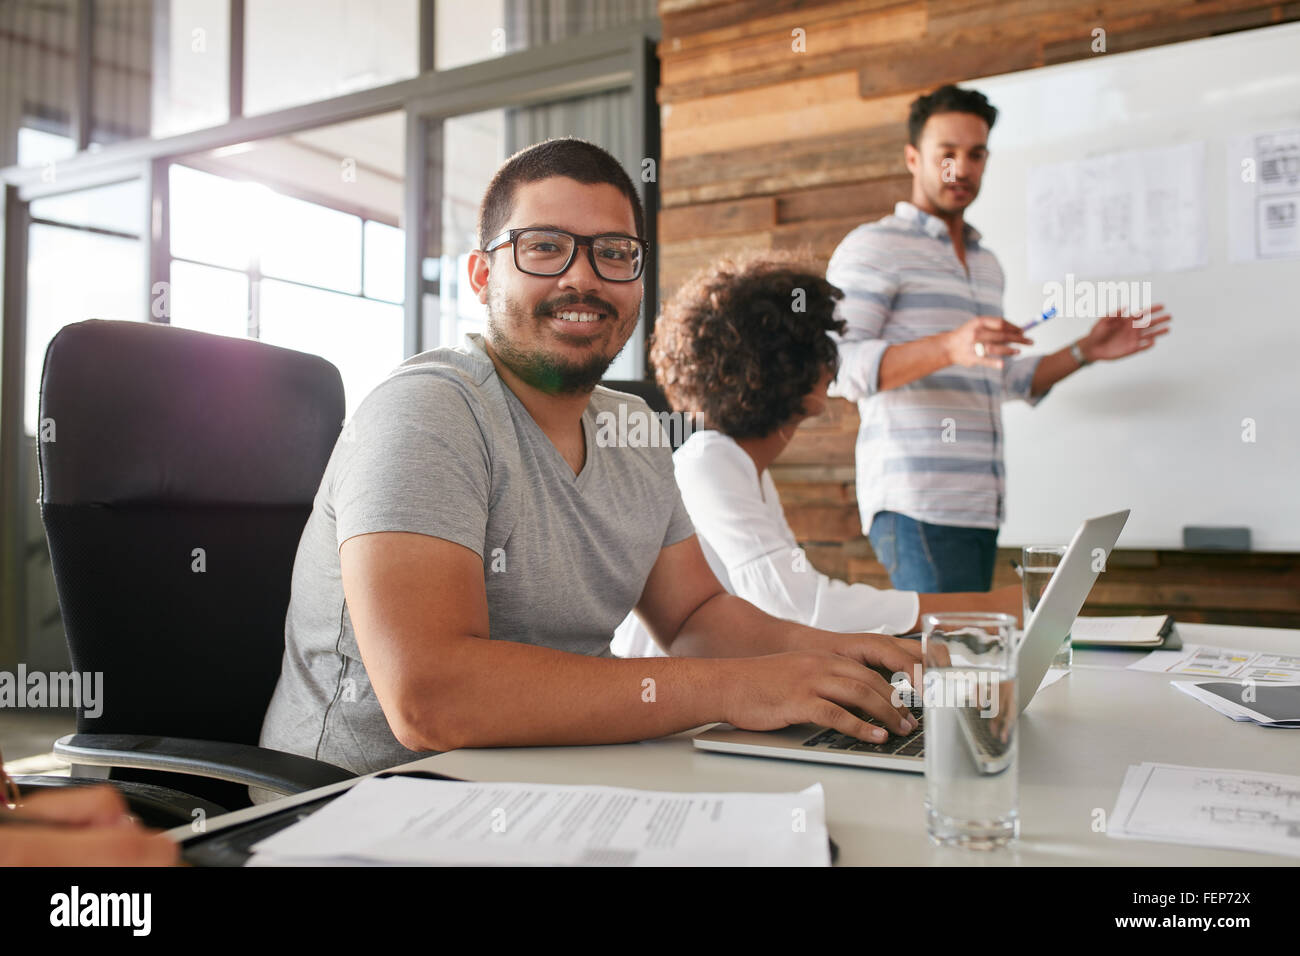 Smiling young man sitting at a business meeting with colleagues - Stock Image